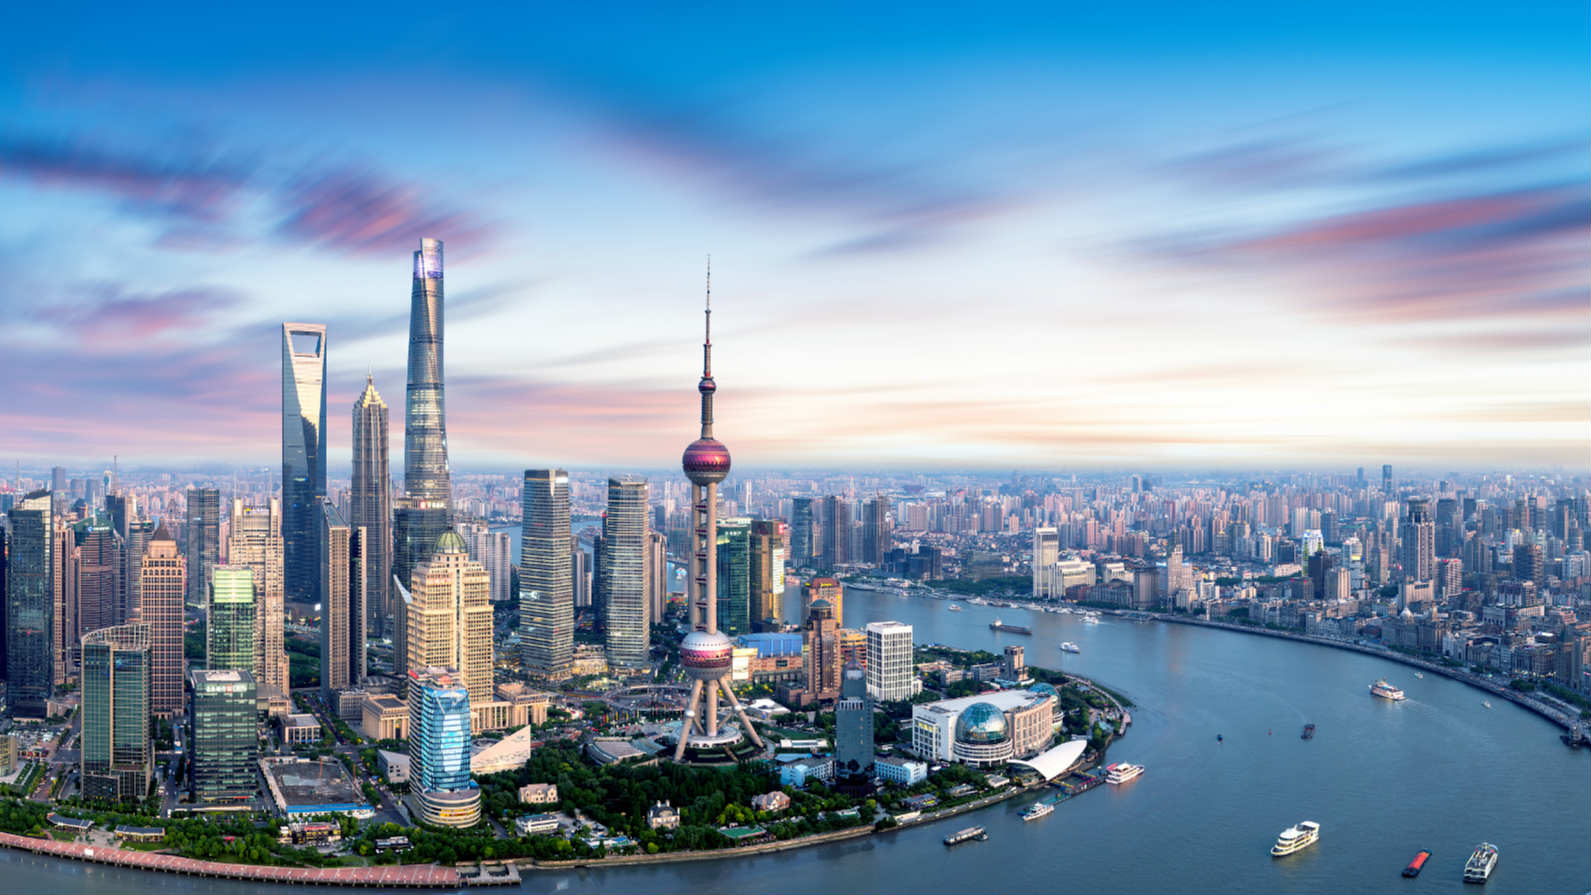 UBS predicts over 8% growth for China's economy in Q1 2021